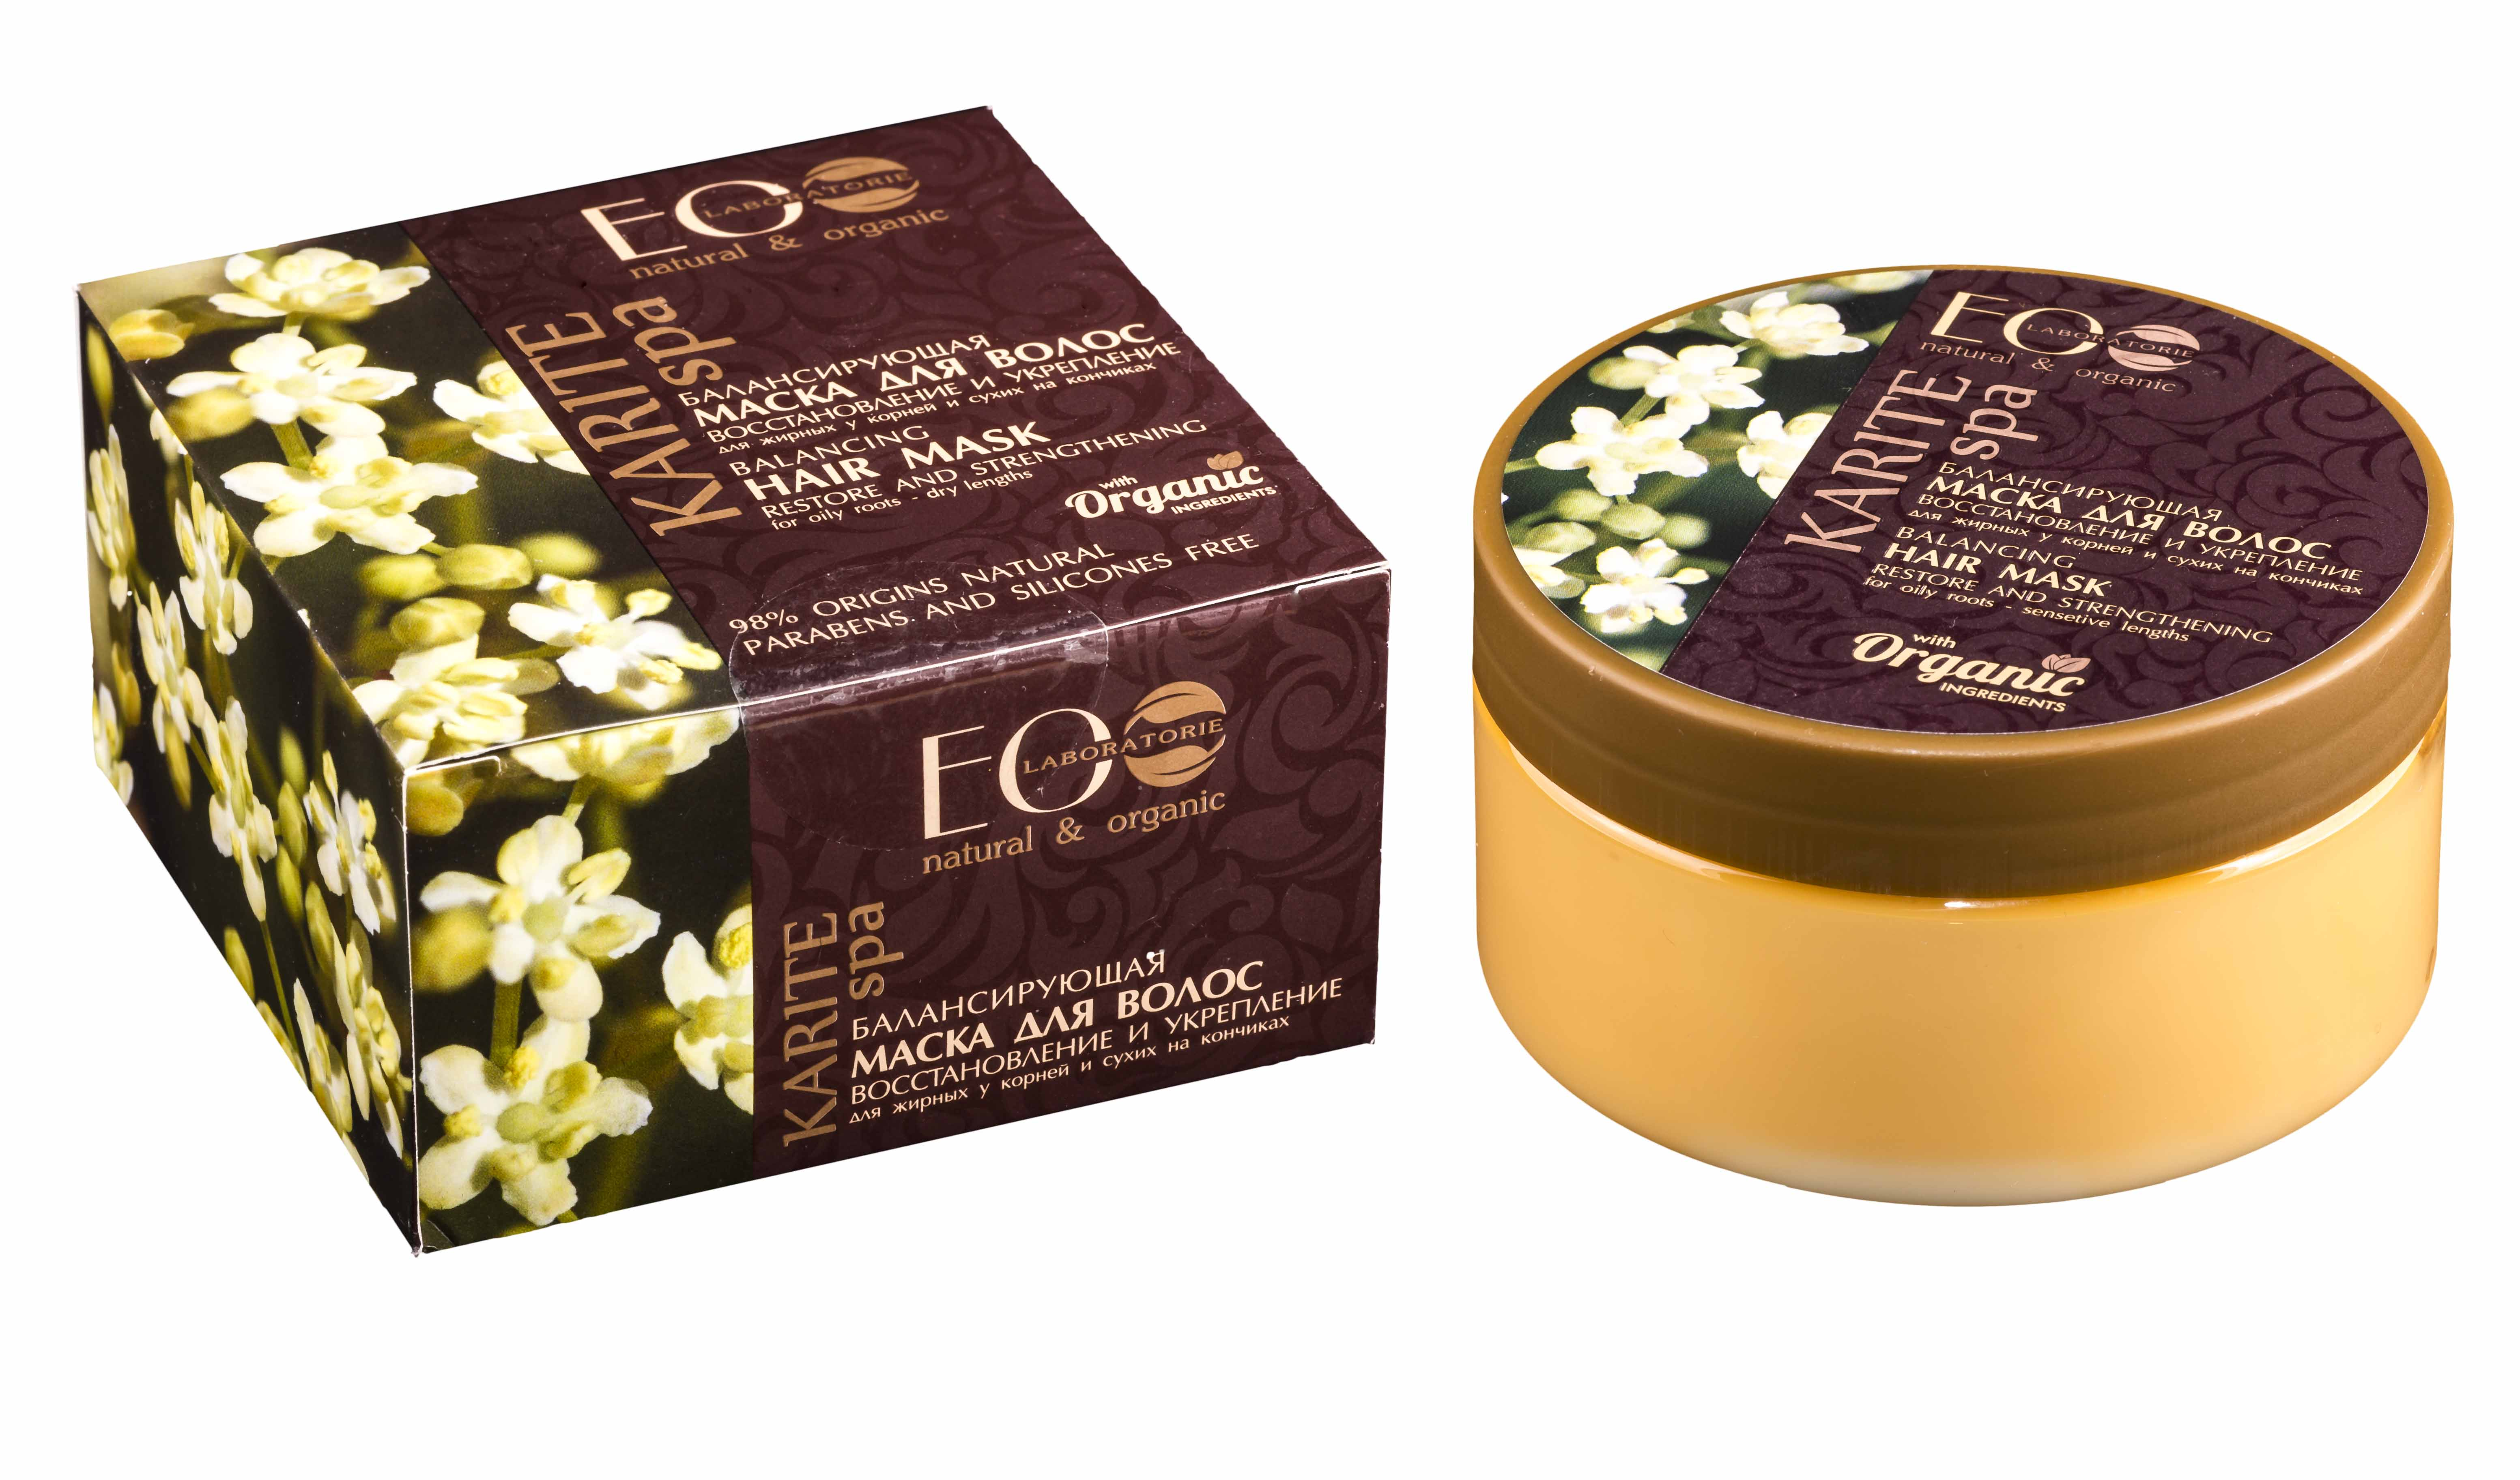 EO Laboratorie Organic  Hair Mask Balancing  For Oily Roots And Dry Ends